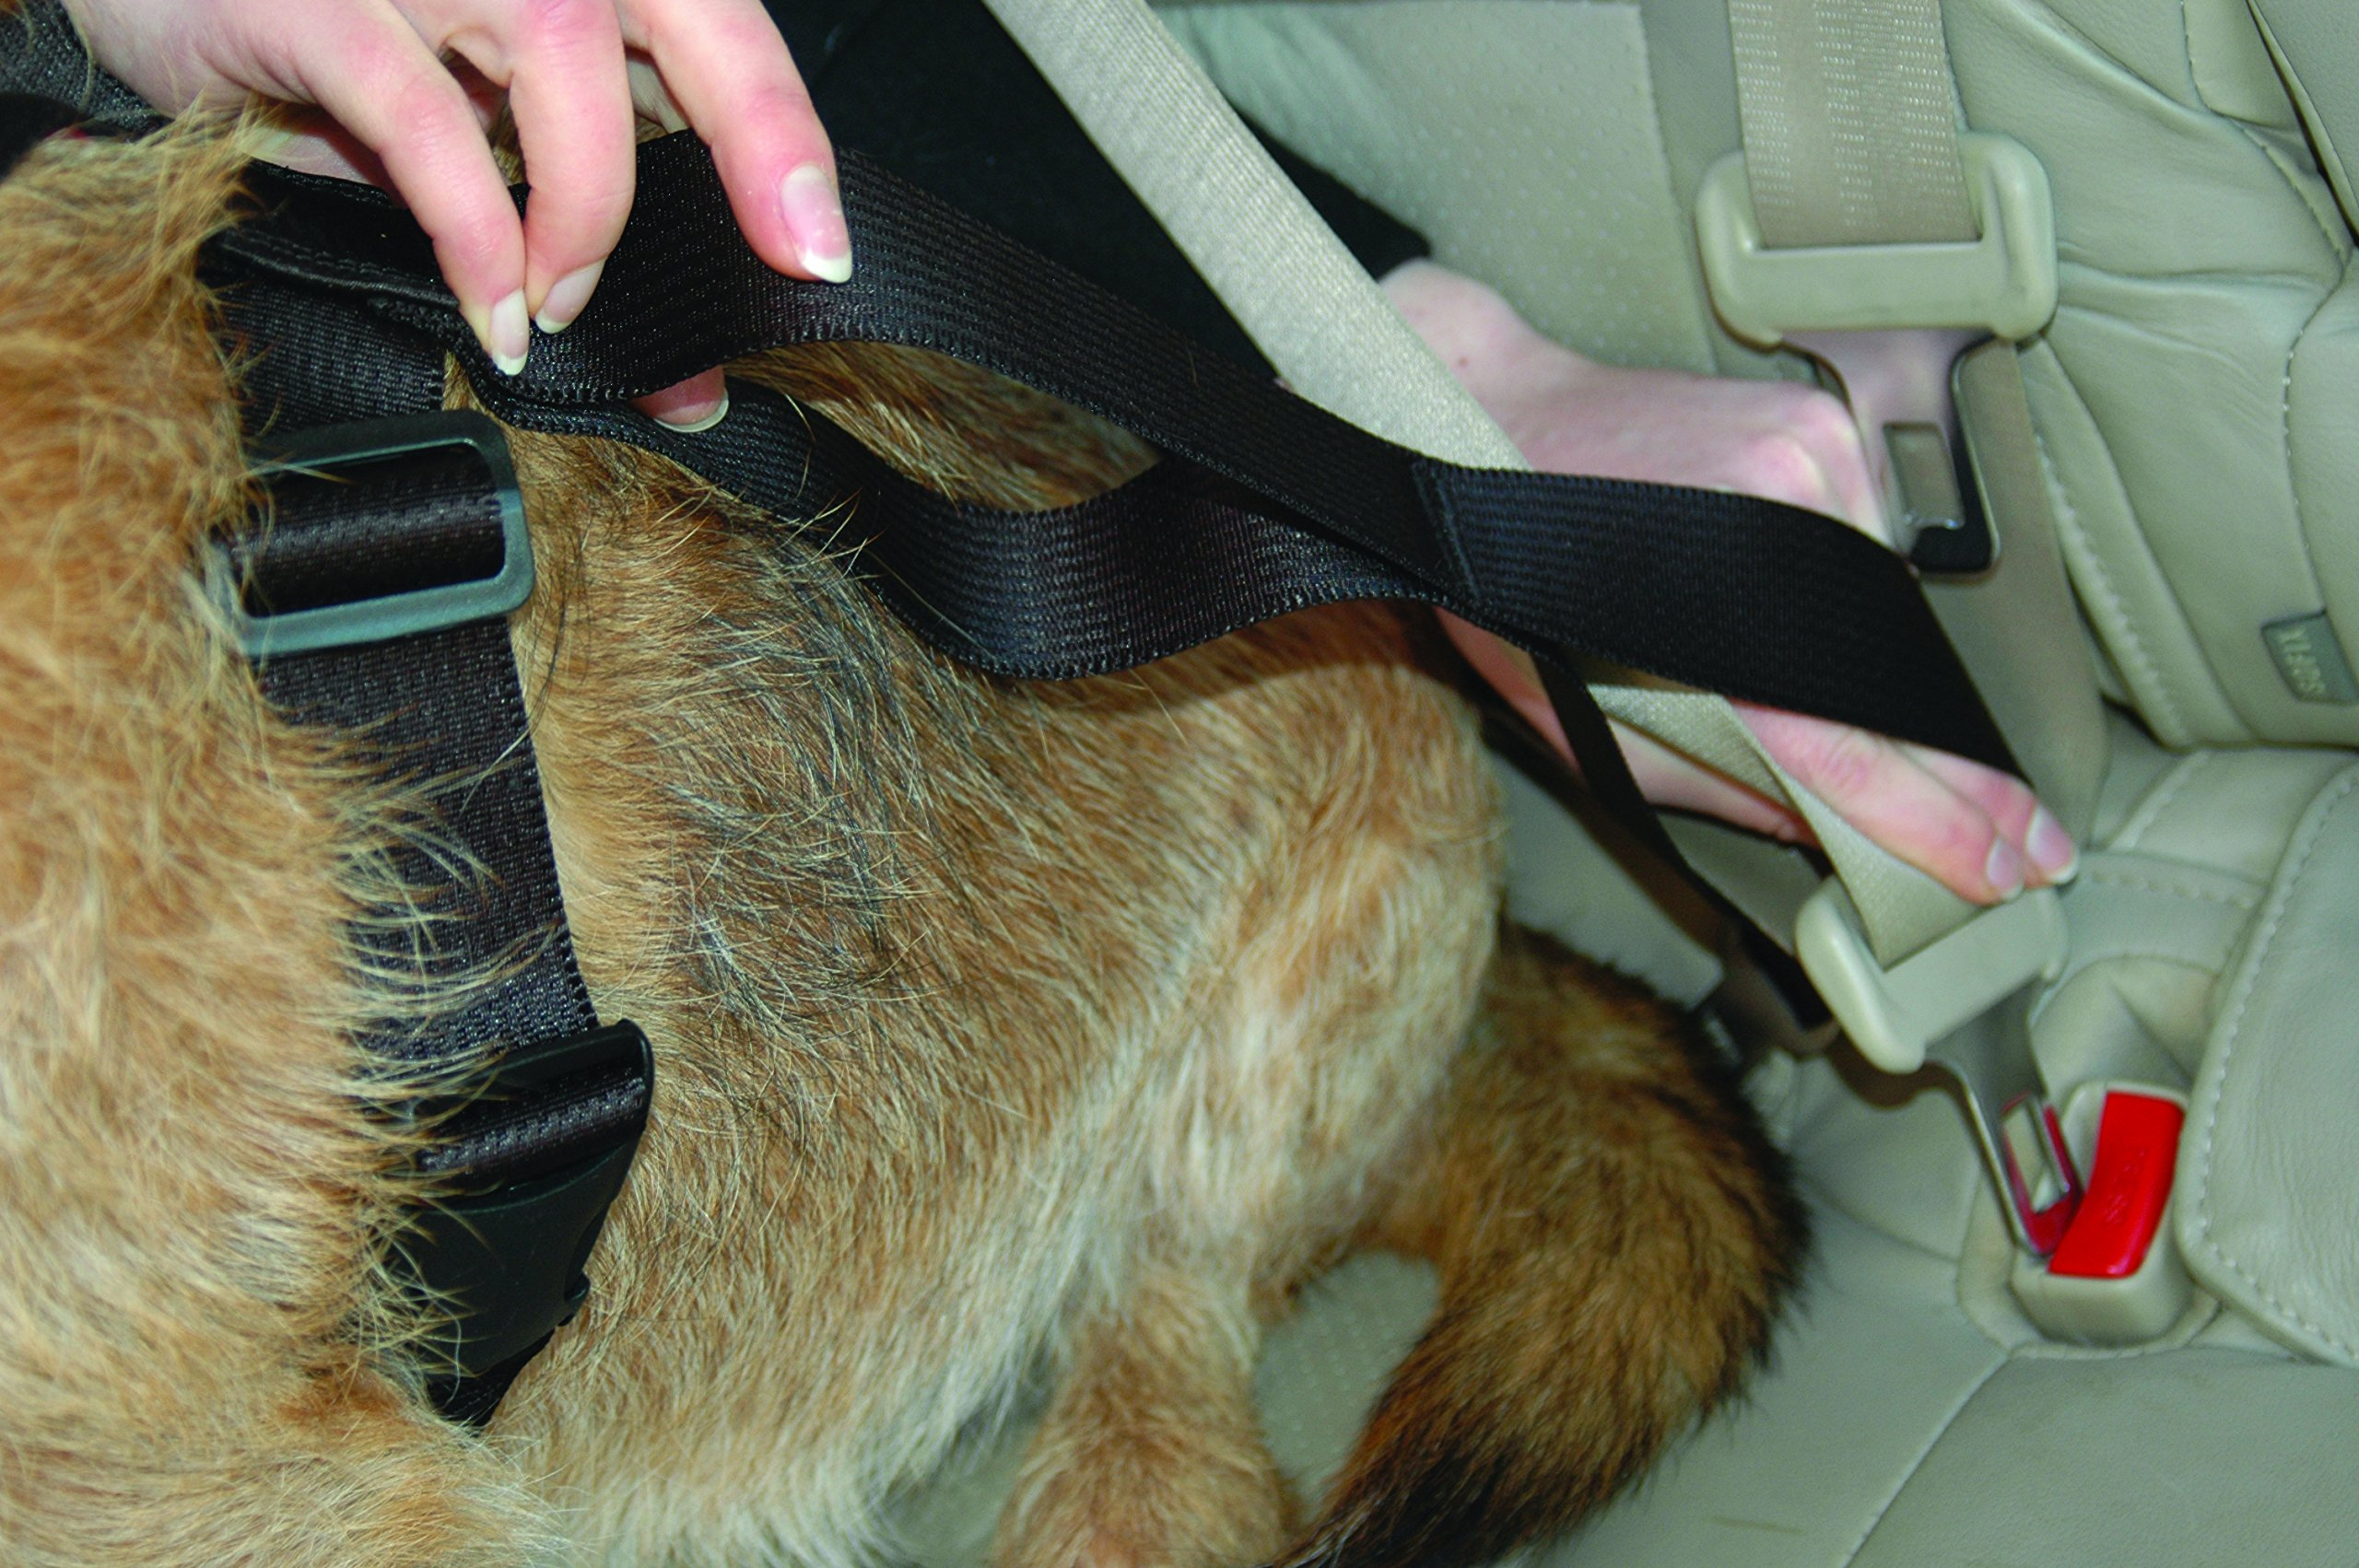 The Company of Animals - CLIX CARSAFE Dog Harness - Multi-Purpose Car Seat Belt and Walking Harness - Easy, Adjustable, Secure and Safe - X-Small by The Company of Animals (Image #5)